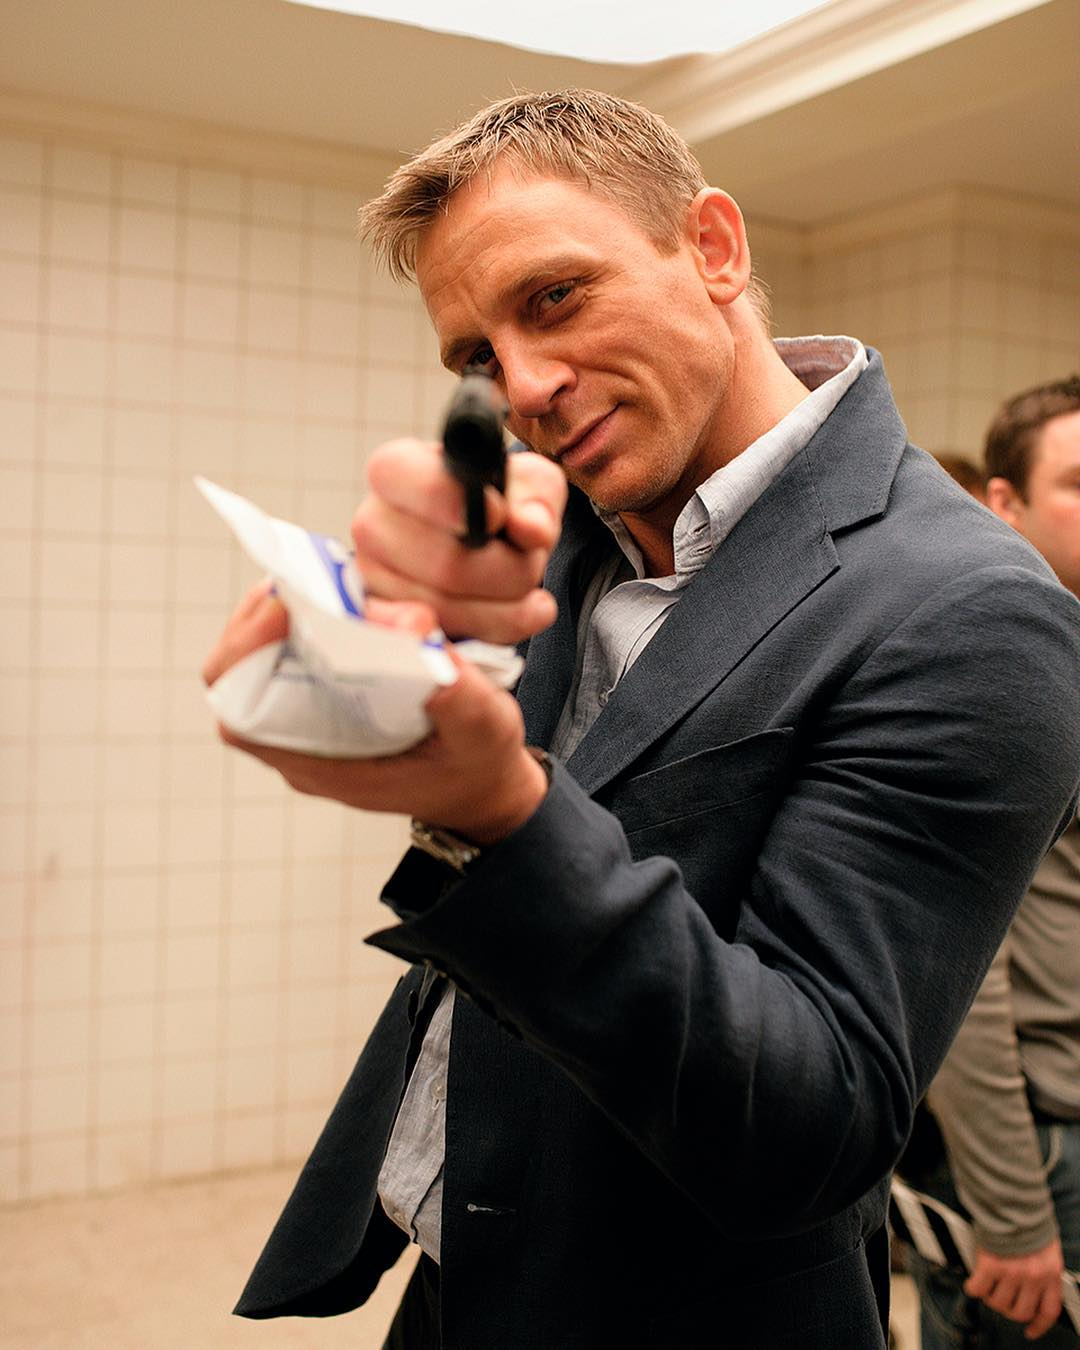 Daniel Craig on action in the set of James Bond film, Casino Royale